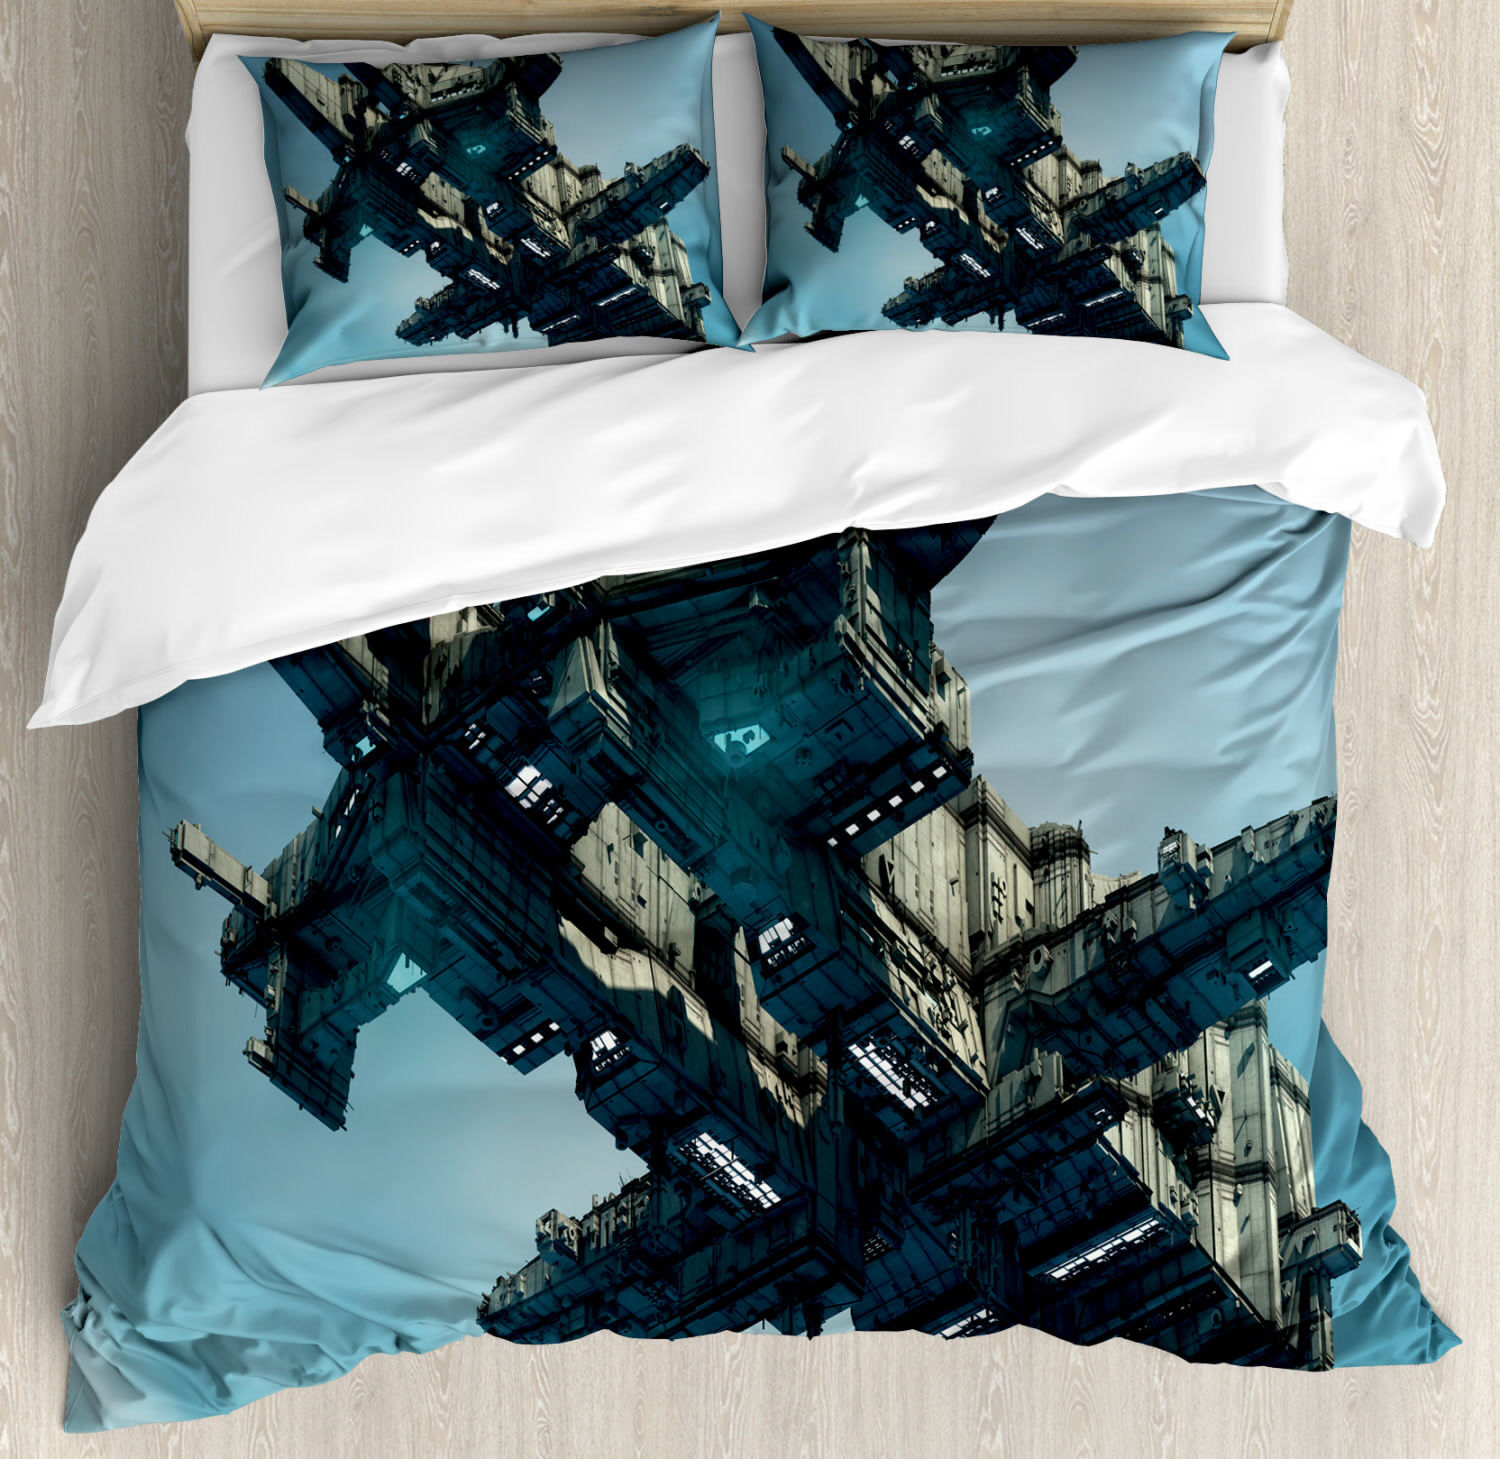 Fantasy Duvet Cover Set with Pillow Shams Sci Fi Alien Ship UFO Print